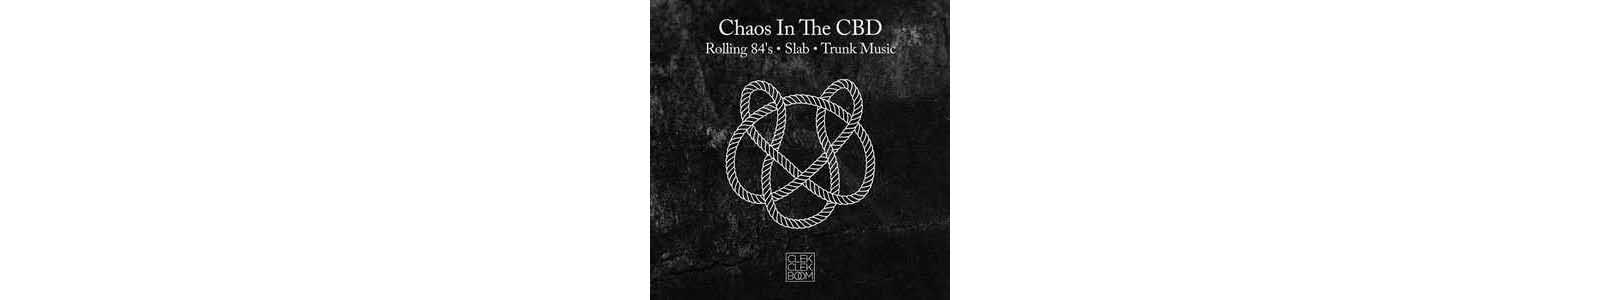 chaos-cbd-review-dure-vie